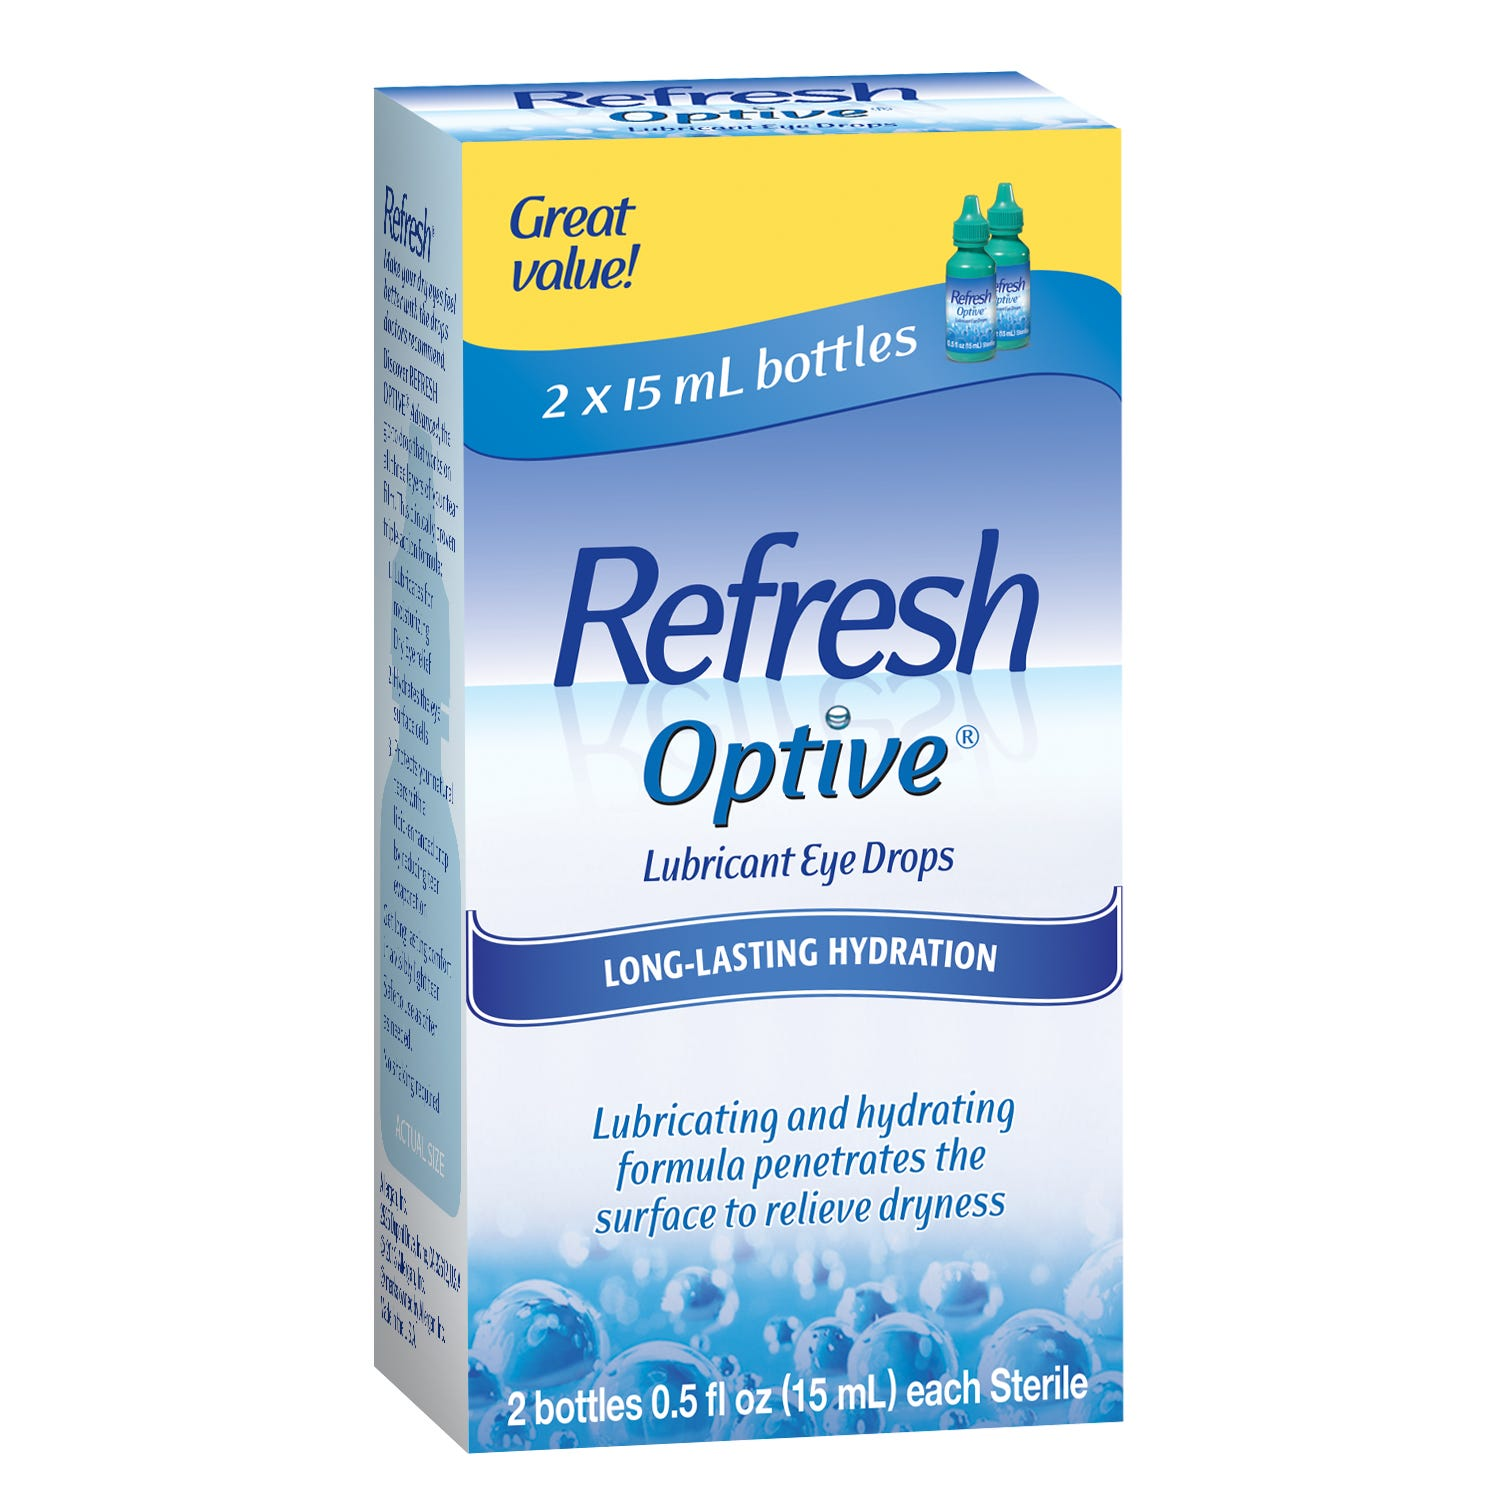 Image of Refresh Optive Eye Drops, Lubricant, 2 - 0.5 fl oz (15 ml) bottles